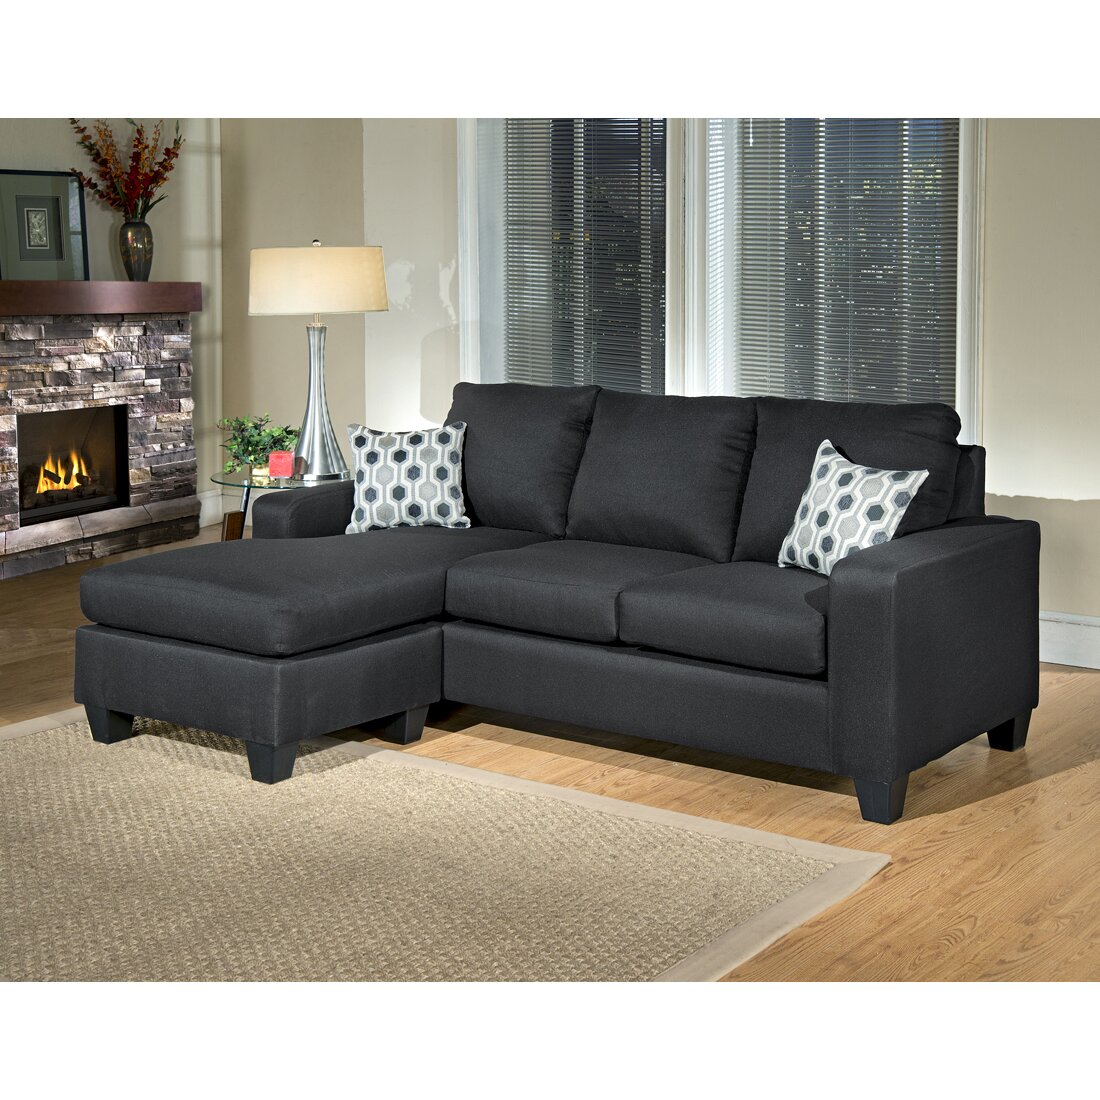 Reversible Sectional MCRR MCRR